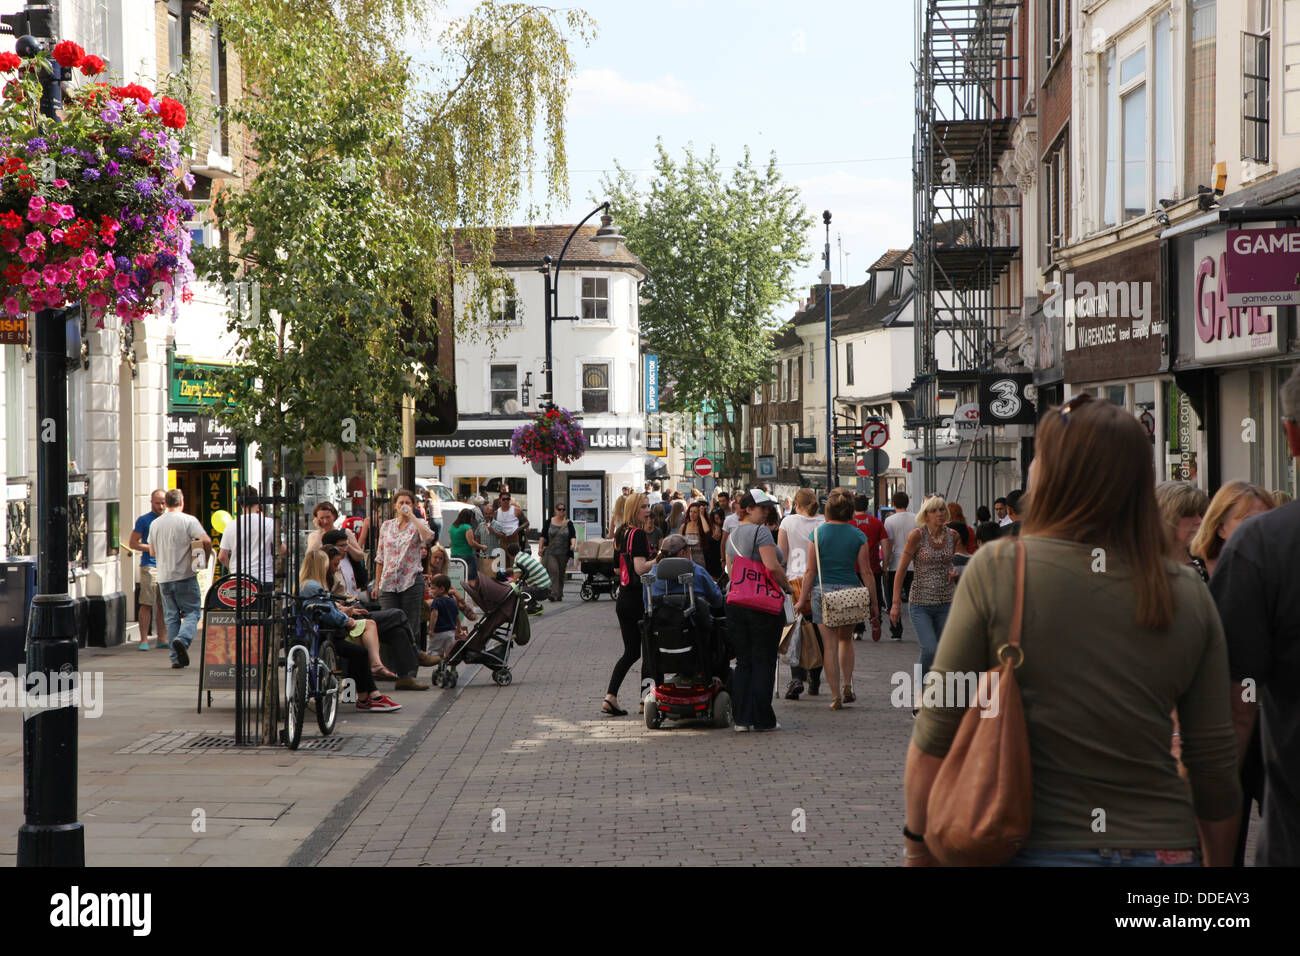 A busy pedestrianized town centre of Maidstone, Kent. - Stock Image